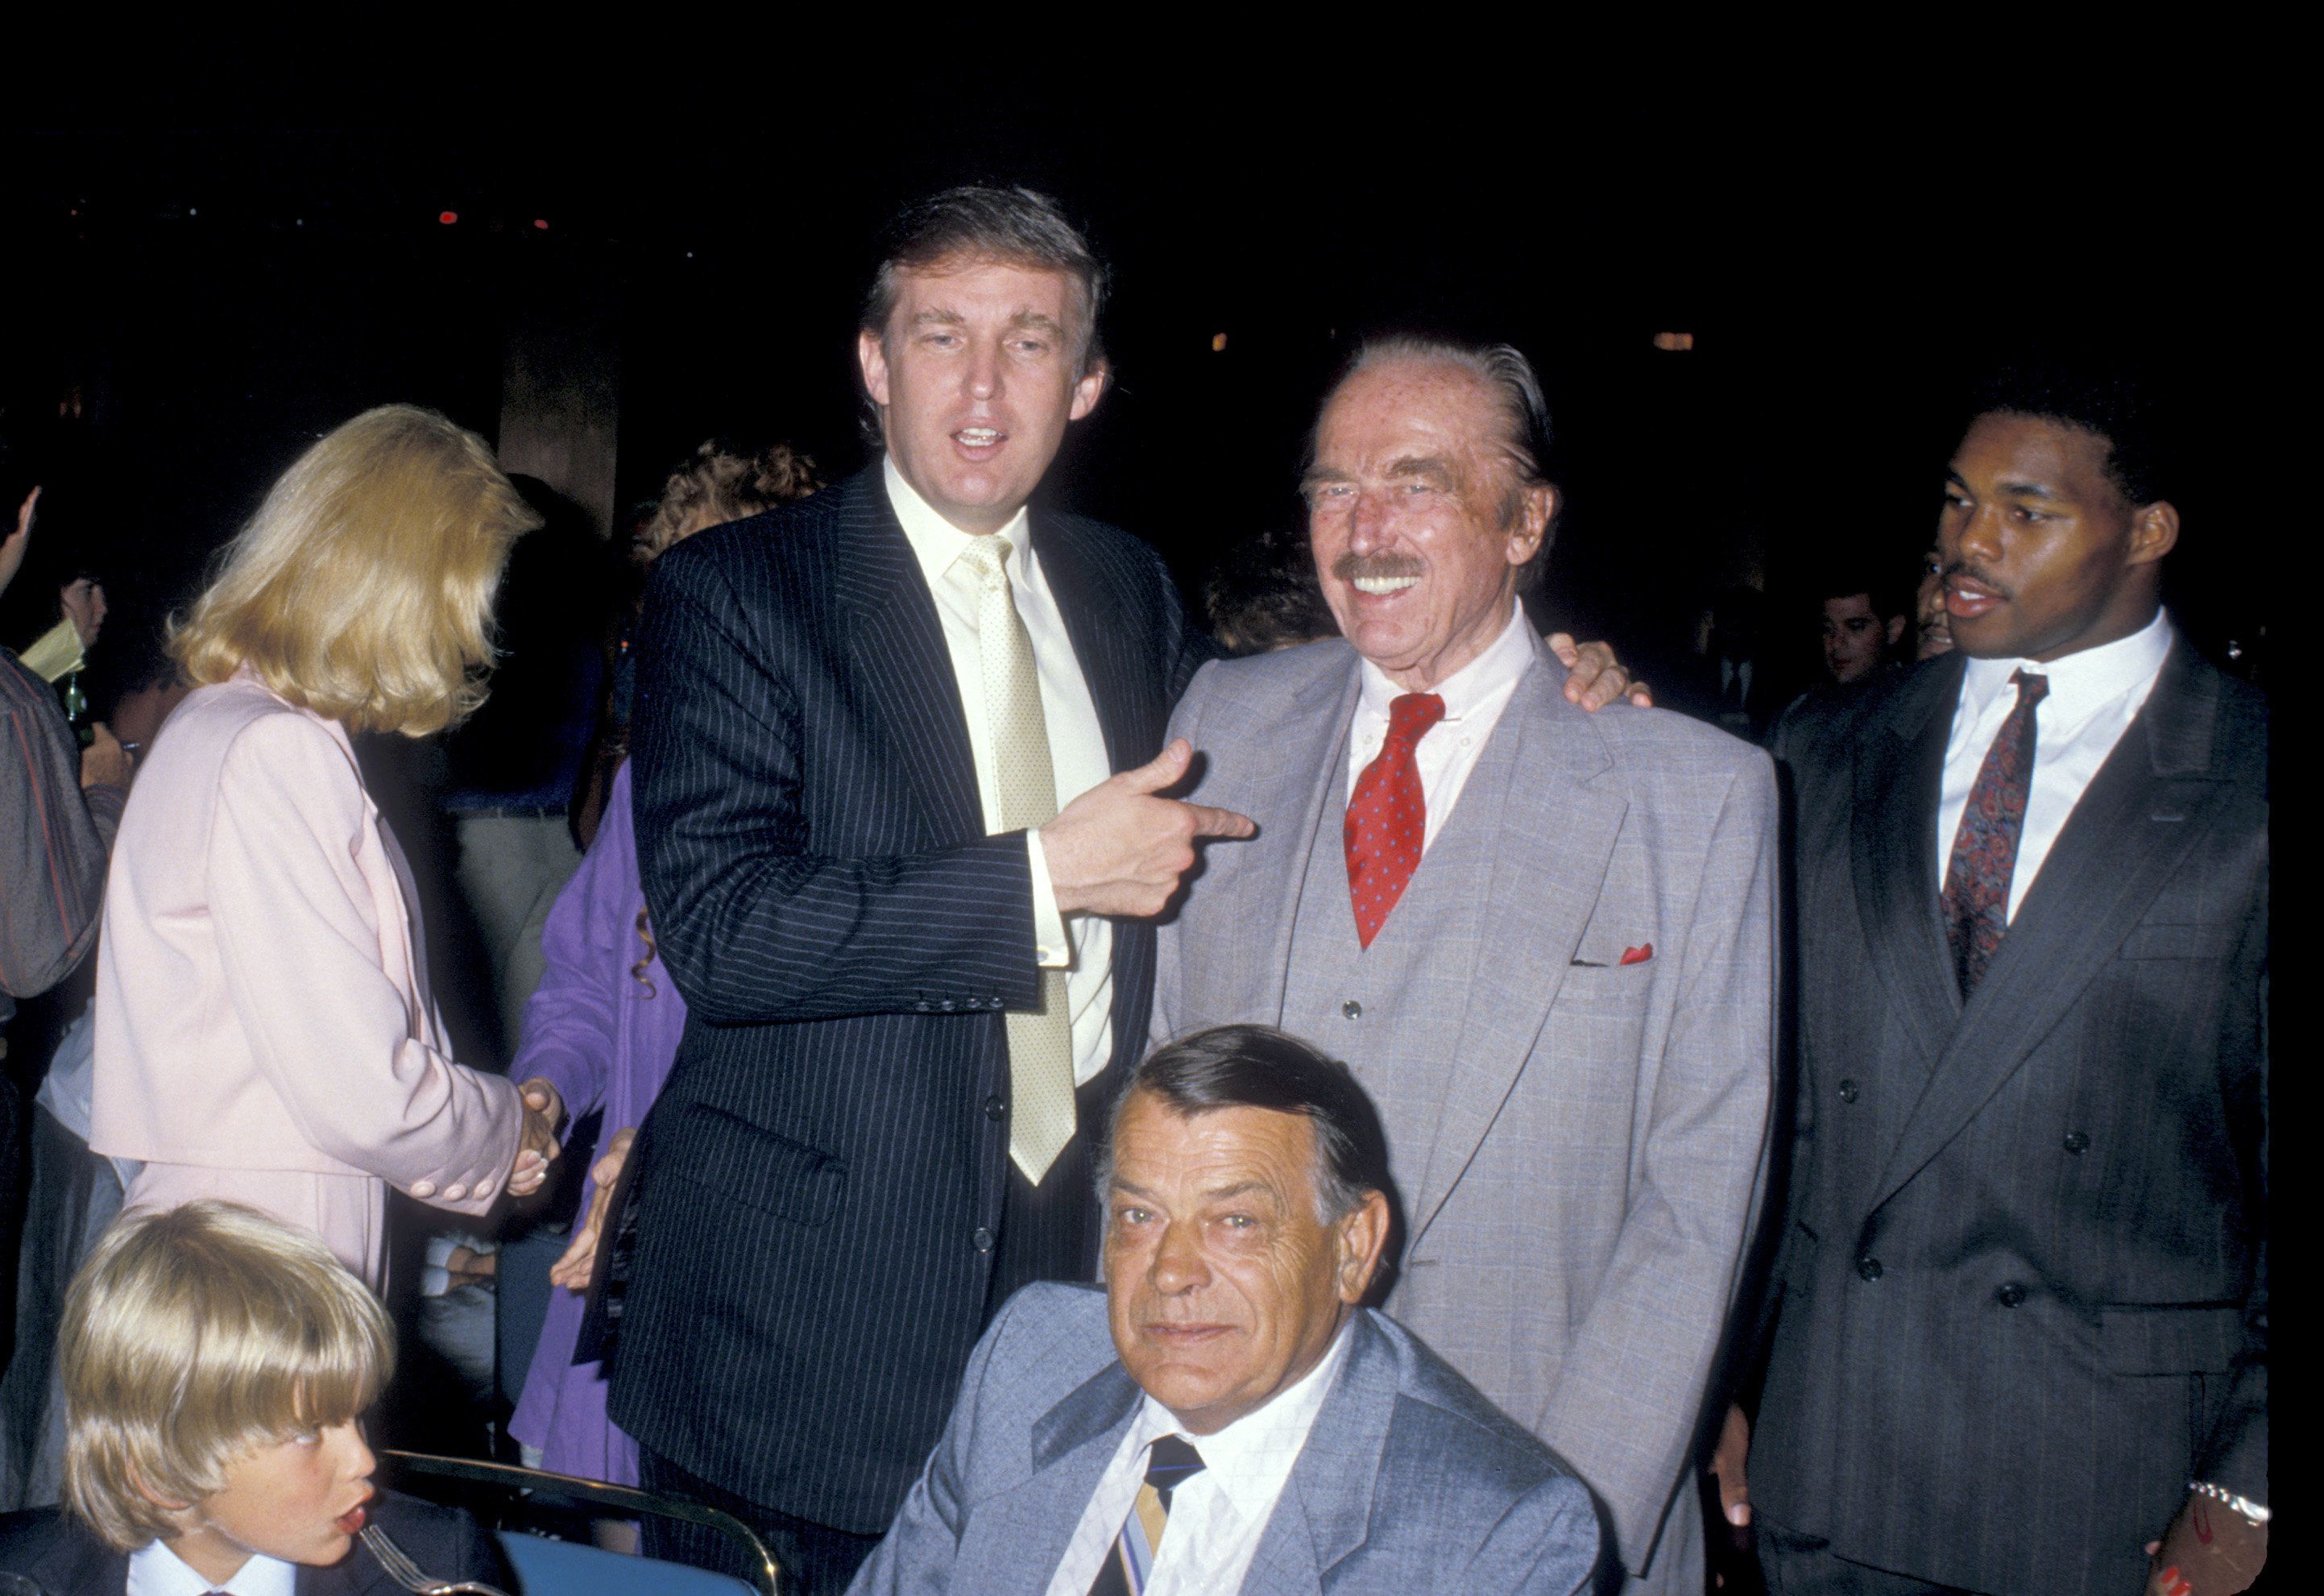 In this undated photo, Donald Trump (left) poses with his father, Fred Trump. According to a bombshell...